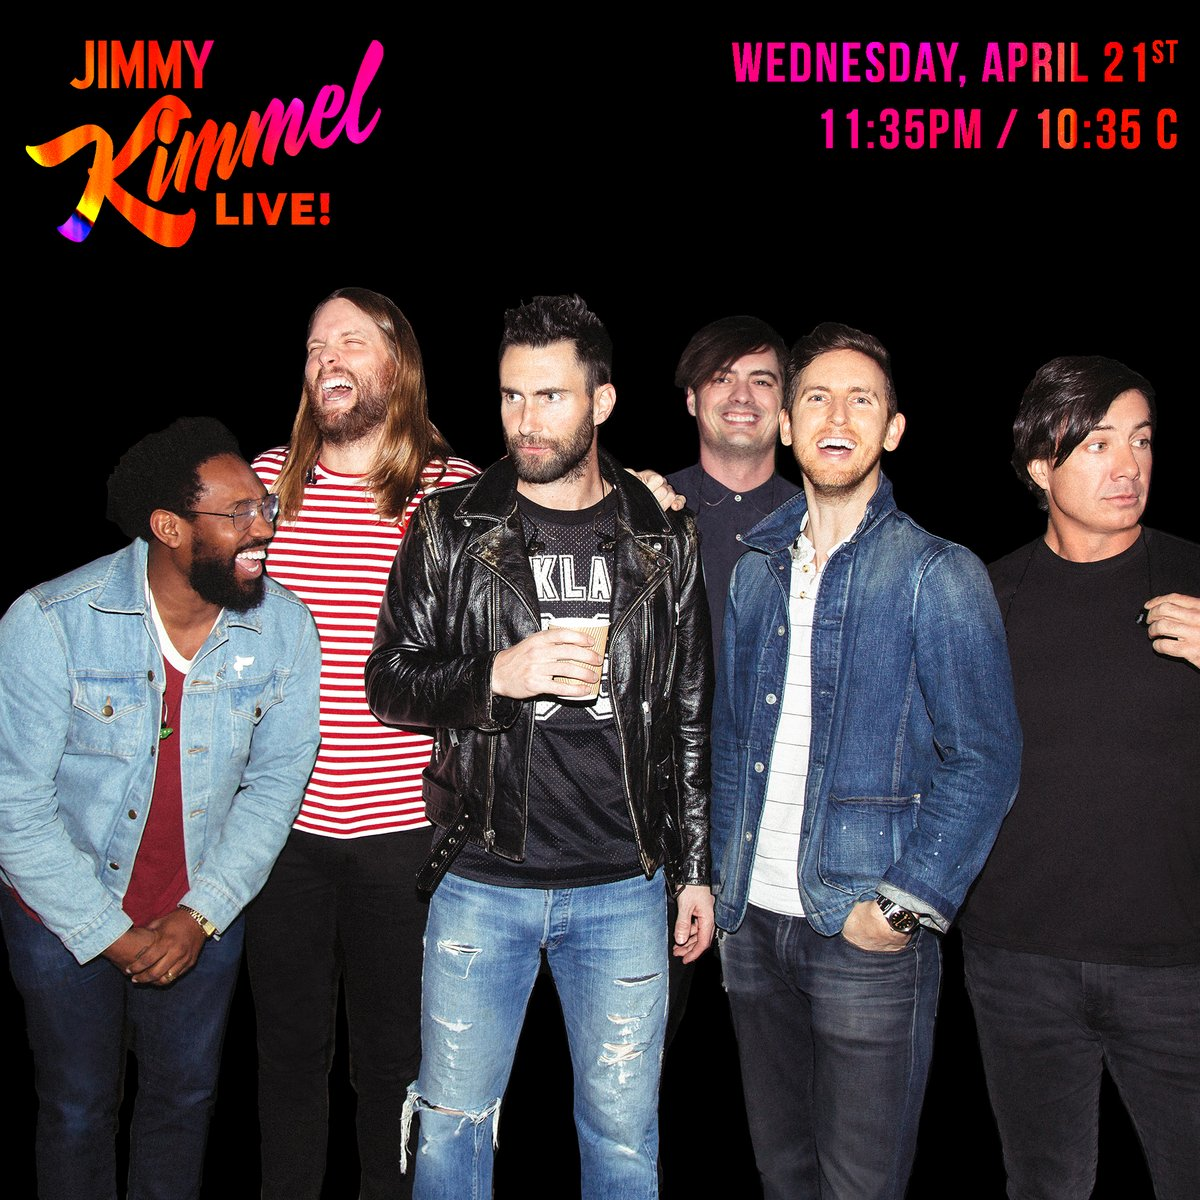 We'll be performing Beautiful Mistakes on @JimmyKimmelLive – Wednesday 4/21on ABC! #KIMMEL https://t.co/CyfaCIOdyS